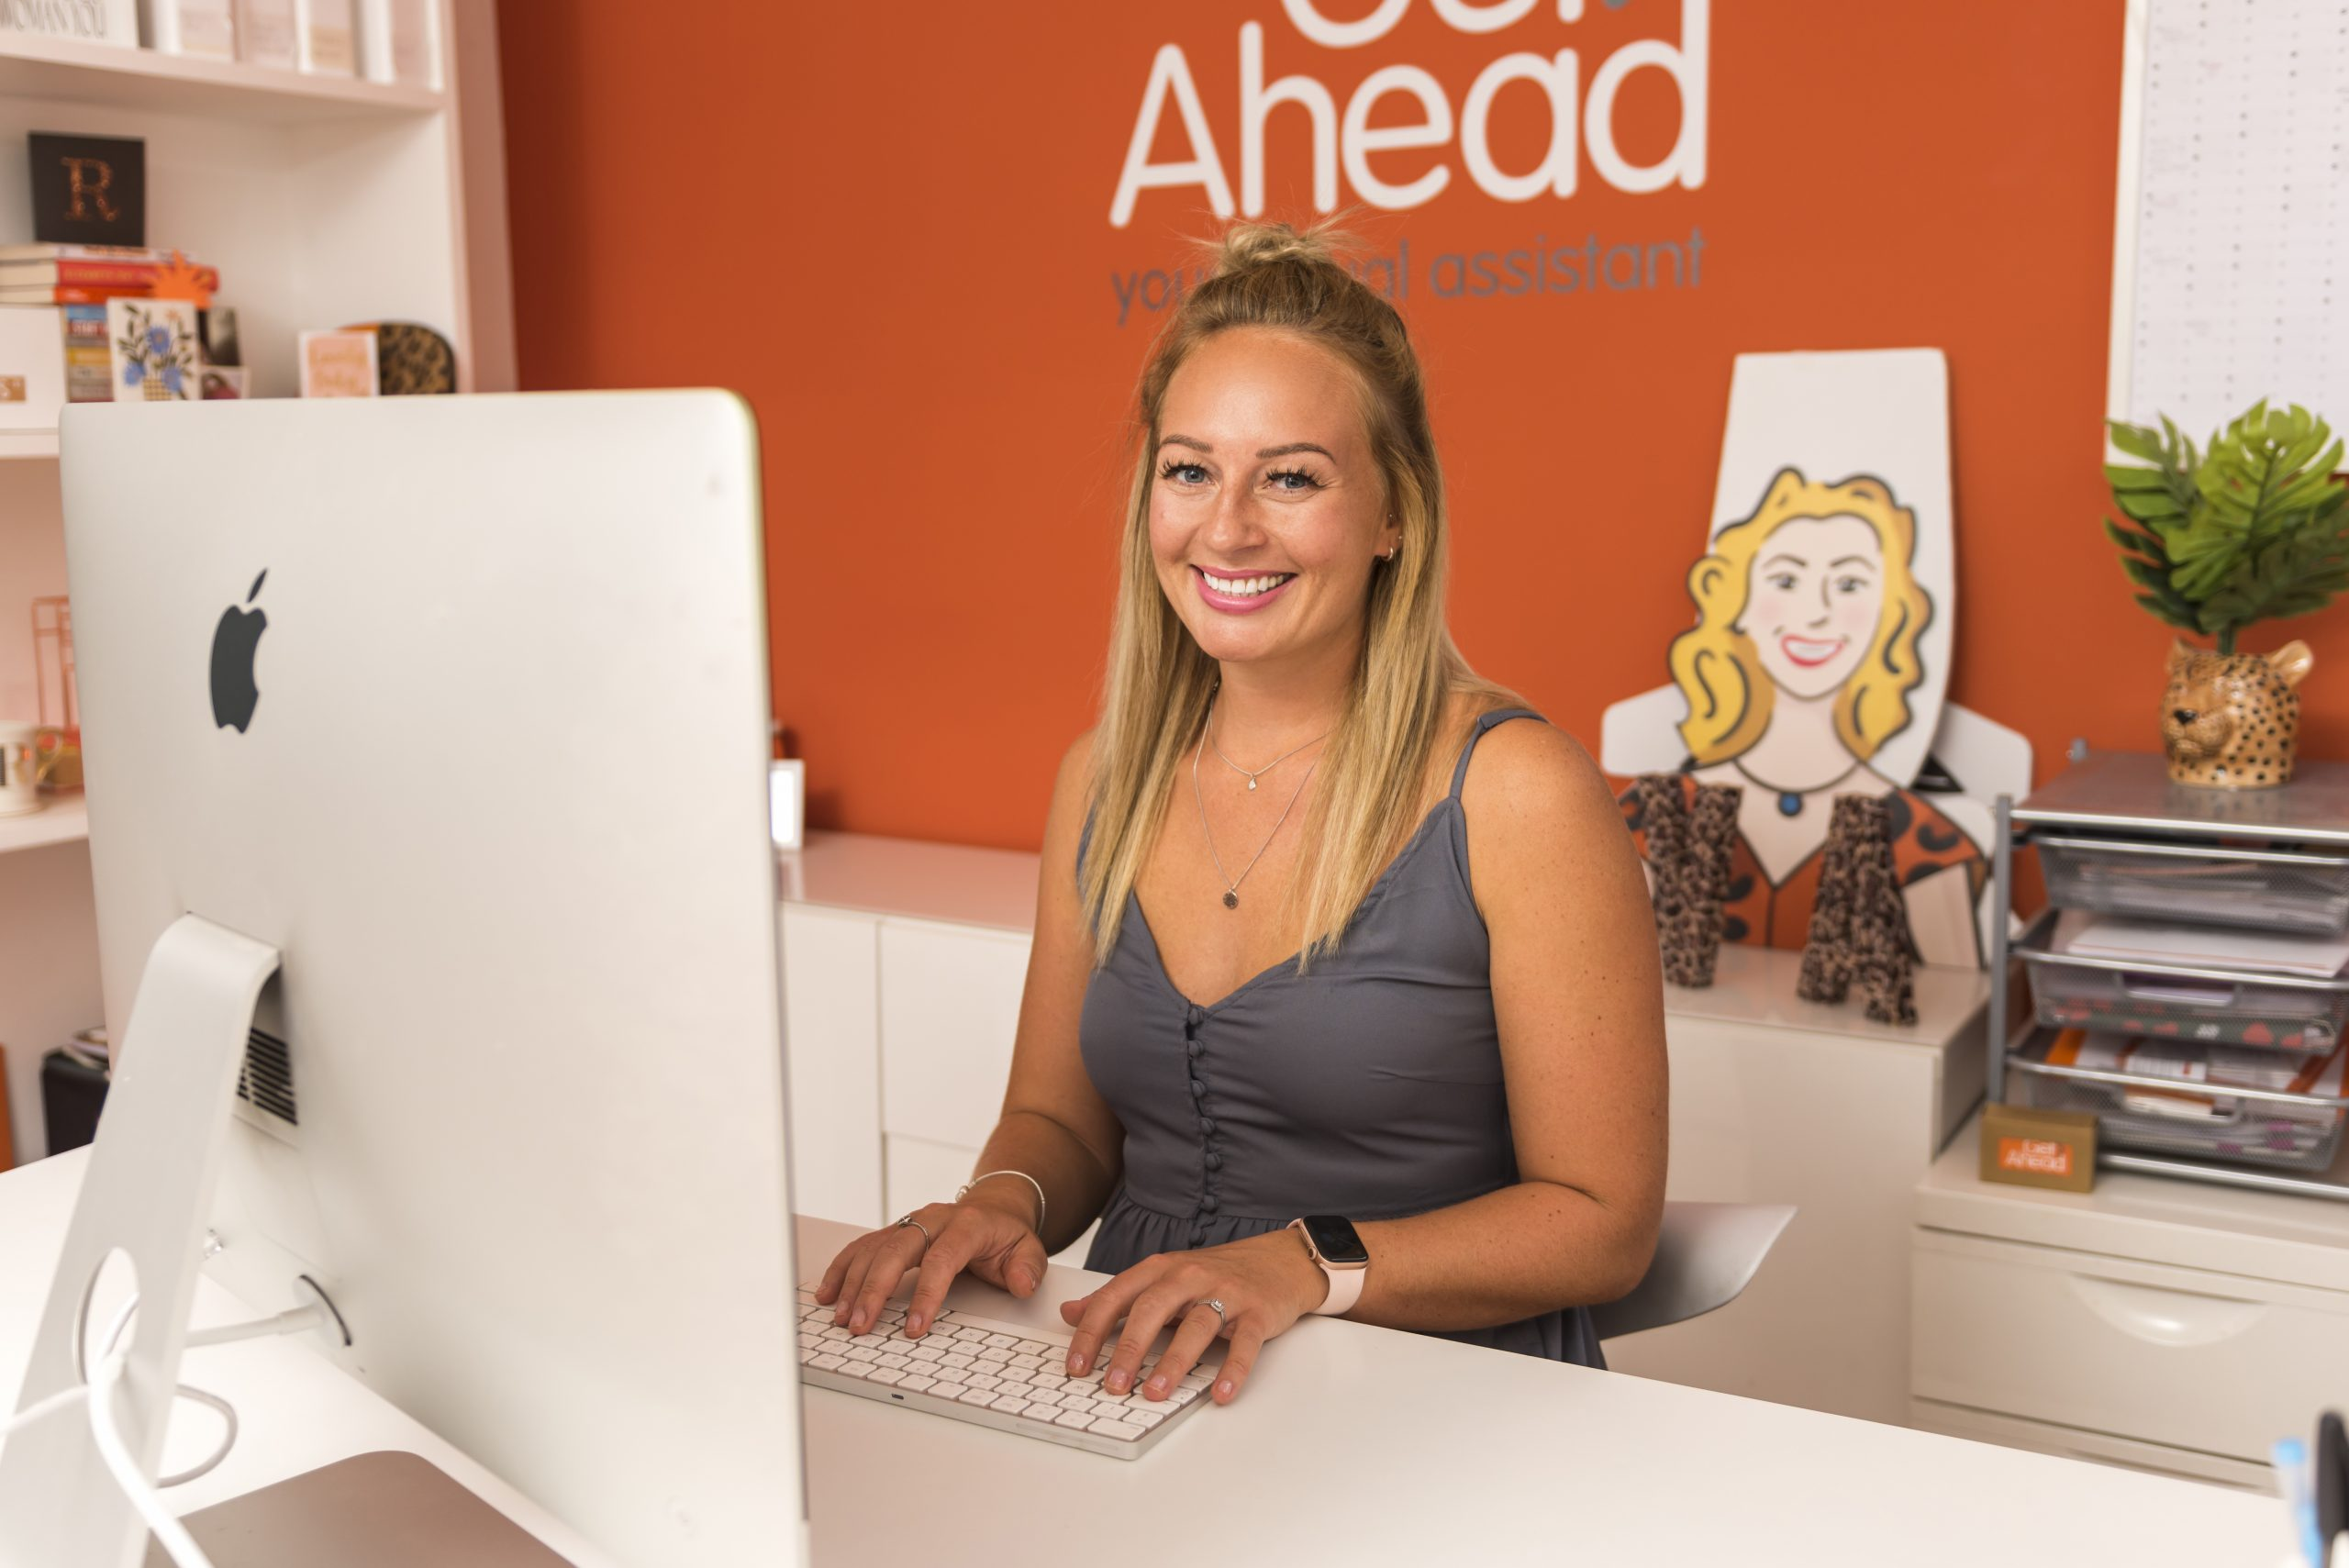 Sophie Birley Brown sitting at Get Ahead desk